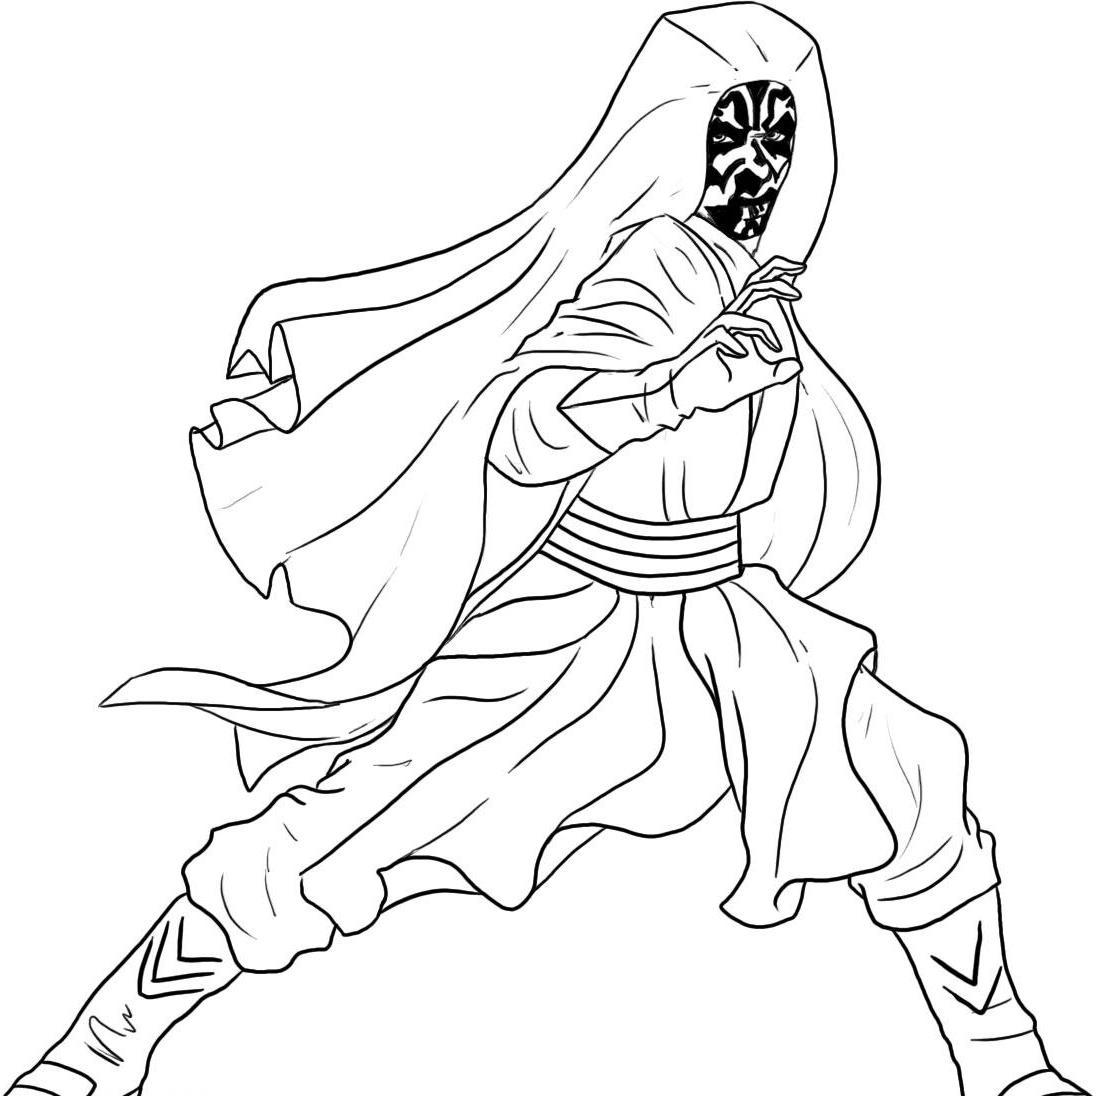 Darth Maul Coloring Page New How to Draw Step by Star Wars Download Of Polkadots On Parade Star Wars the force Awakens Coloring Pages Collection